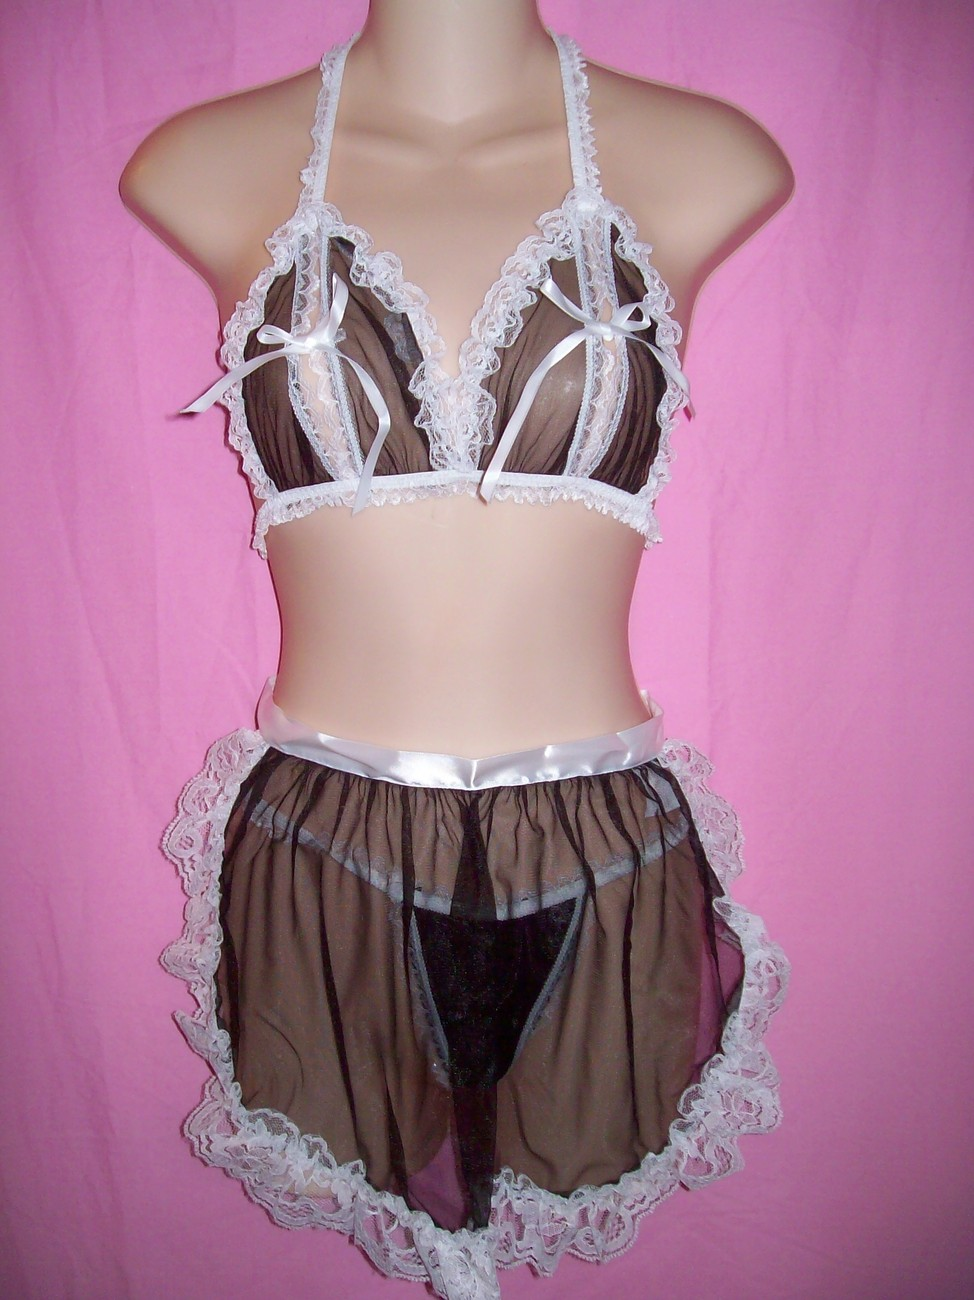 Tease Bodywear Lingerie Sexy Maid For Fun 4 Piece Set : One Size